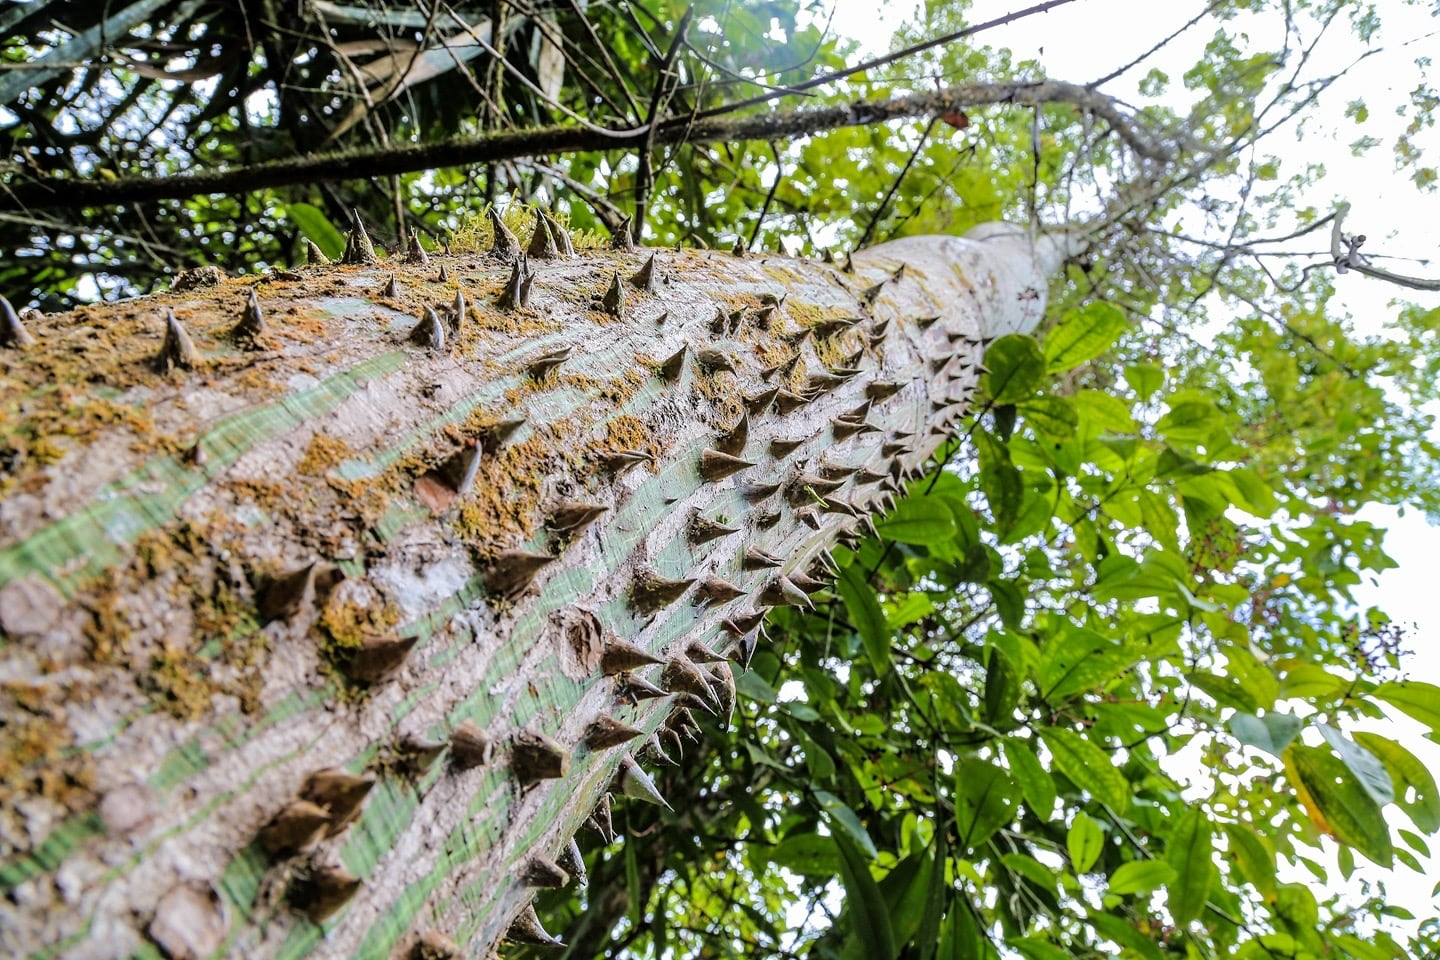 thorny tree in jungle